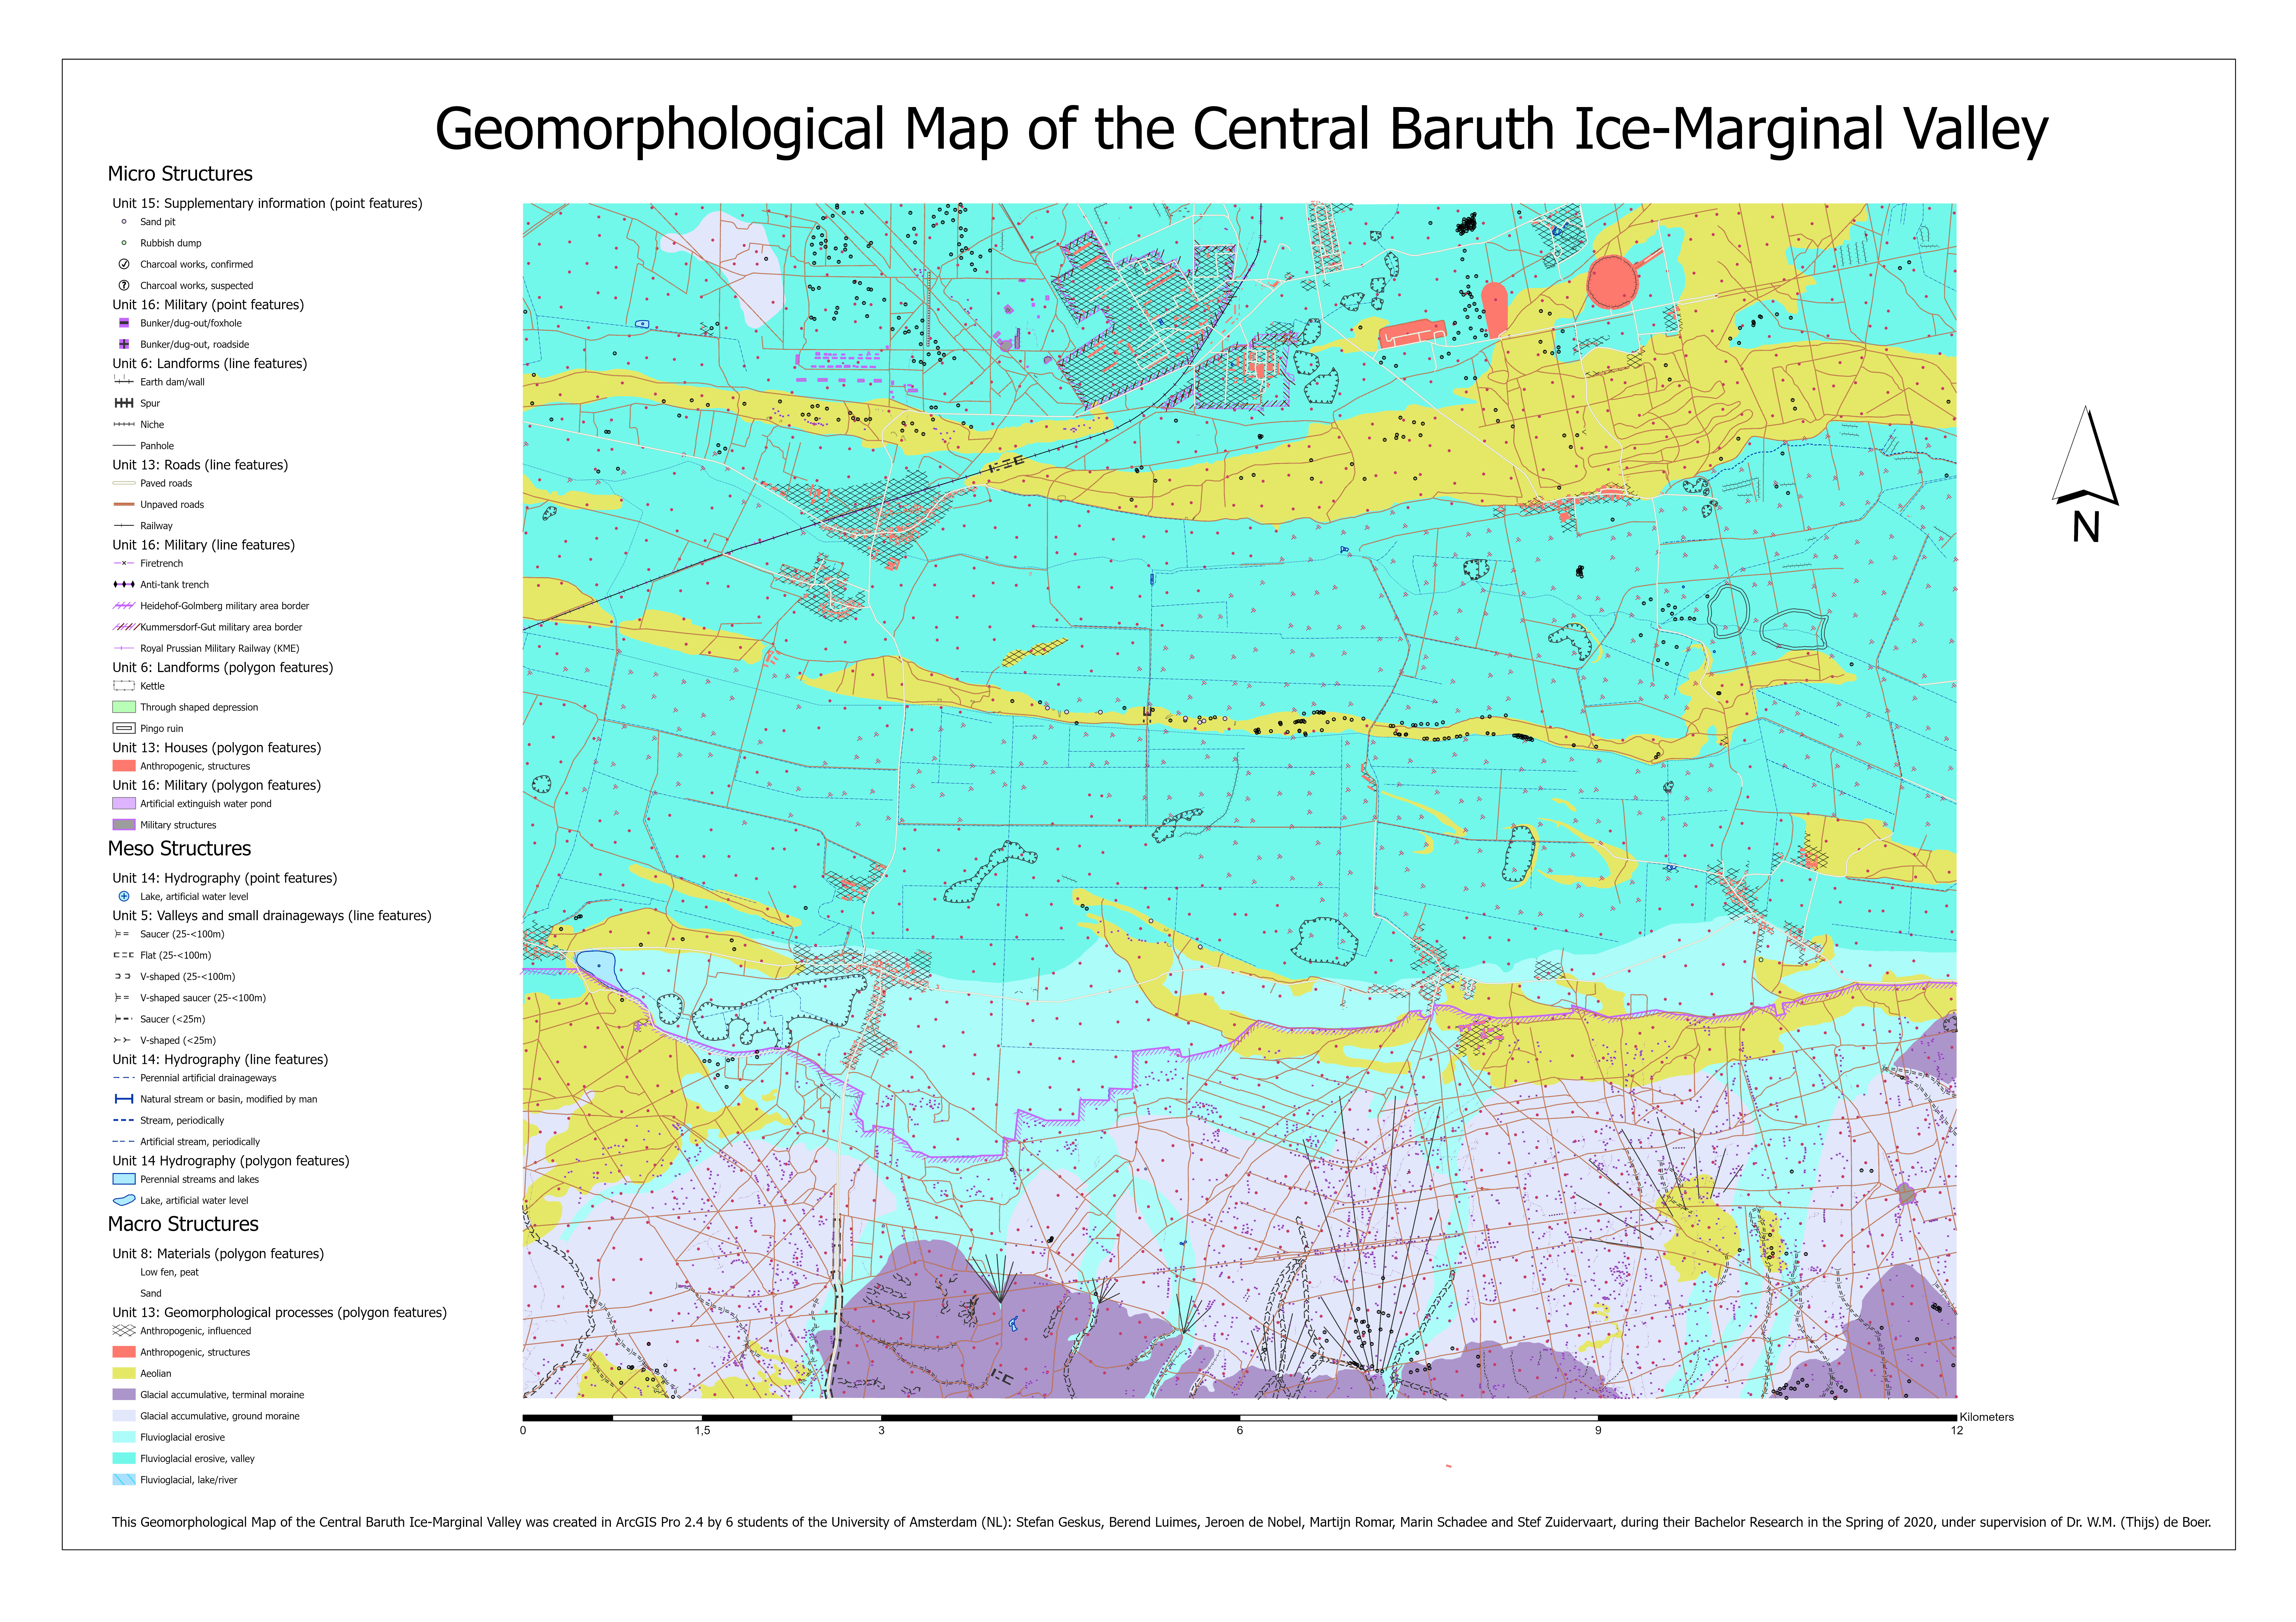 Geomorphological_Map_CBIMV_Layout_A1_landscape_DPI_300.jpg